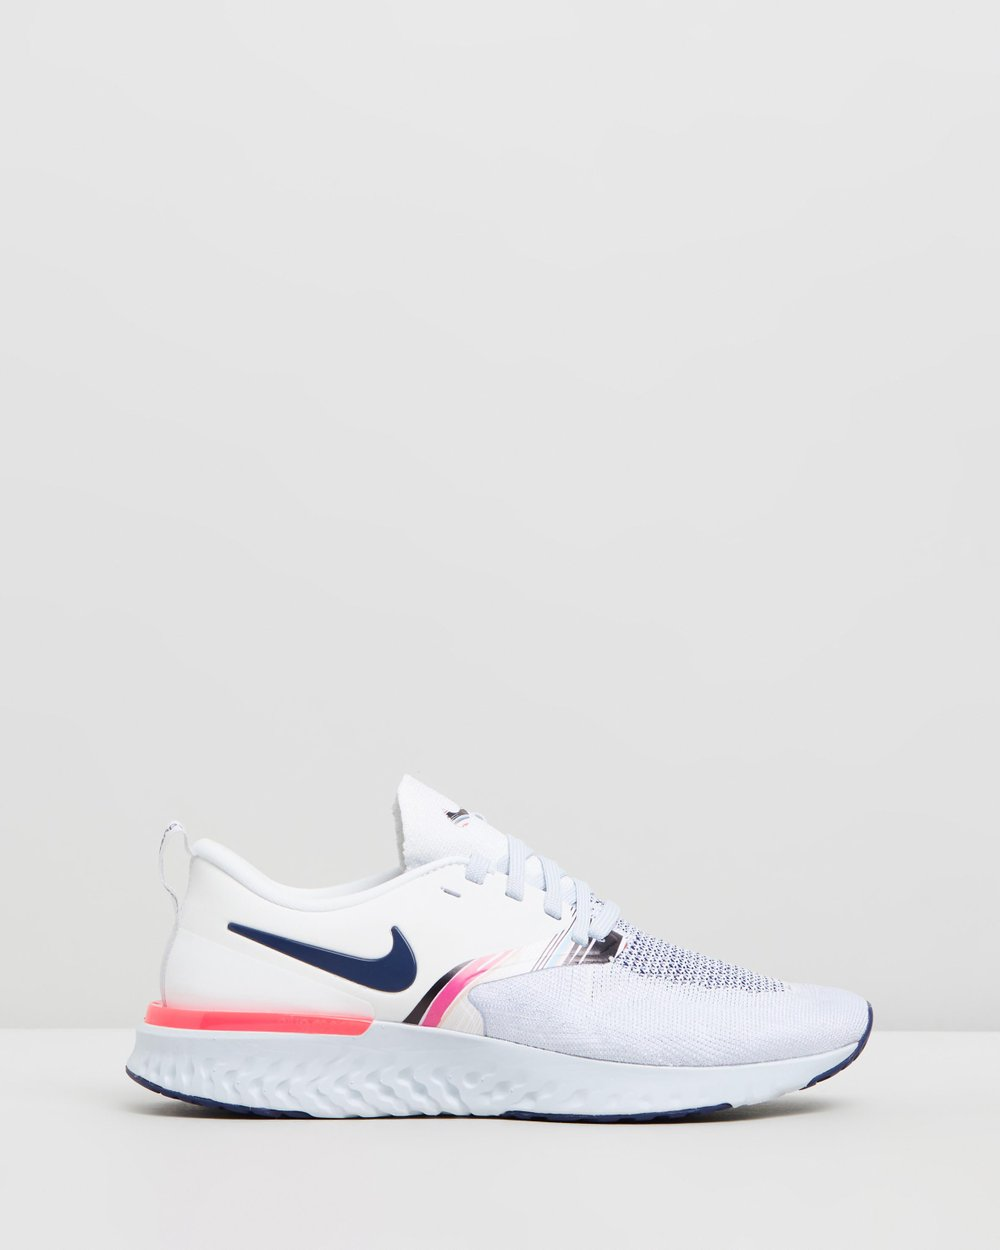 promo code 322ec 5887f Odyssey React Flyknit 2 Premium - Women s by Nike Online   THE ICONIC    Australia